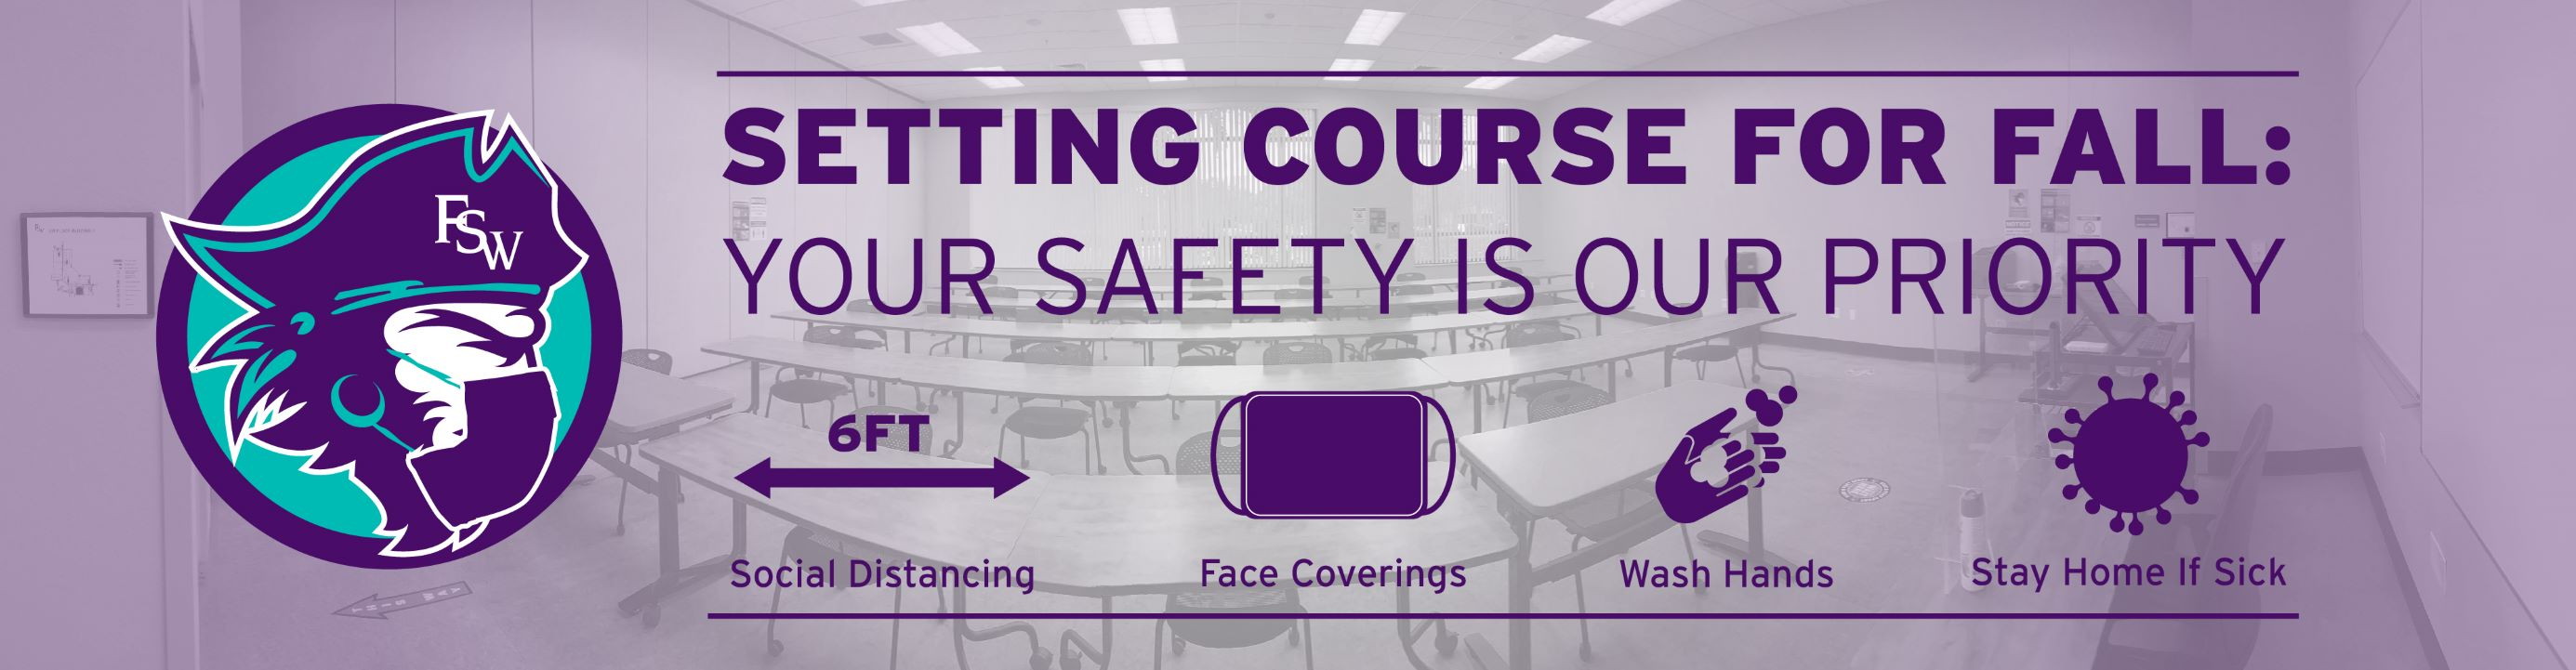 Face coverings and social distancing required in all FSW buildings beginning July 13th.